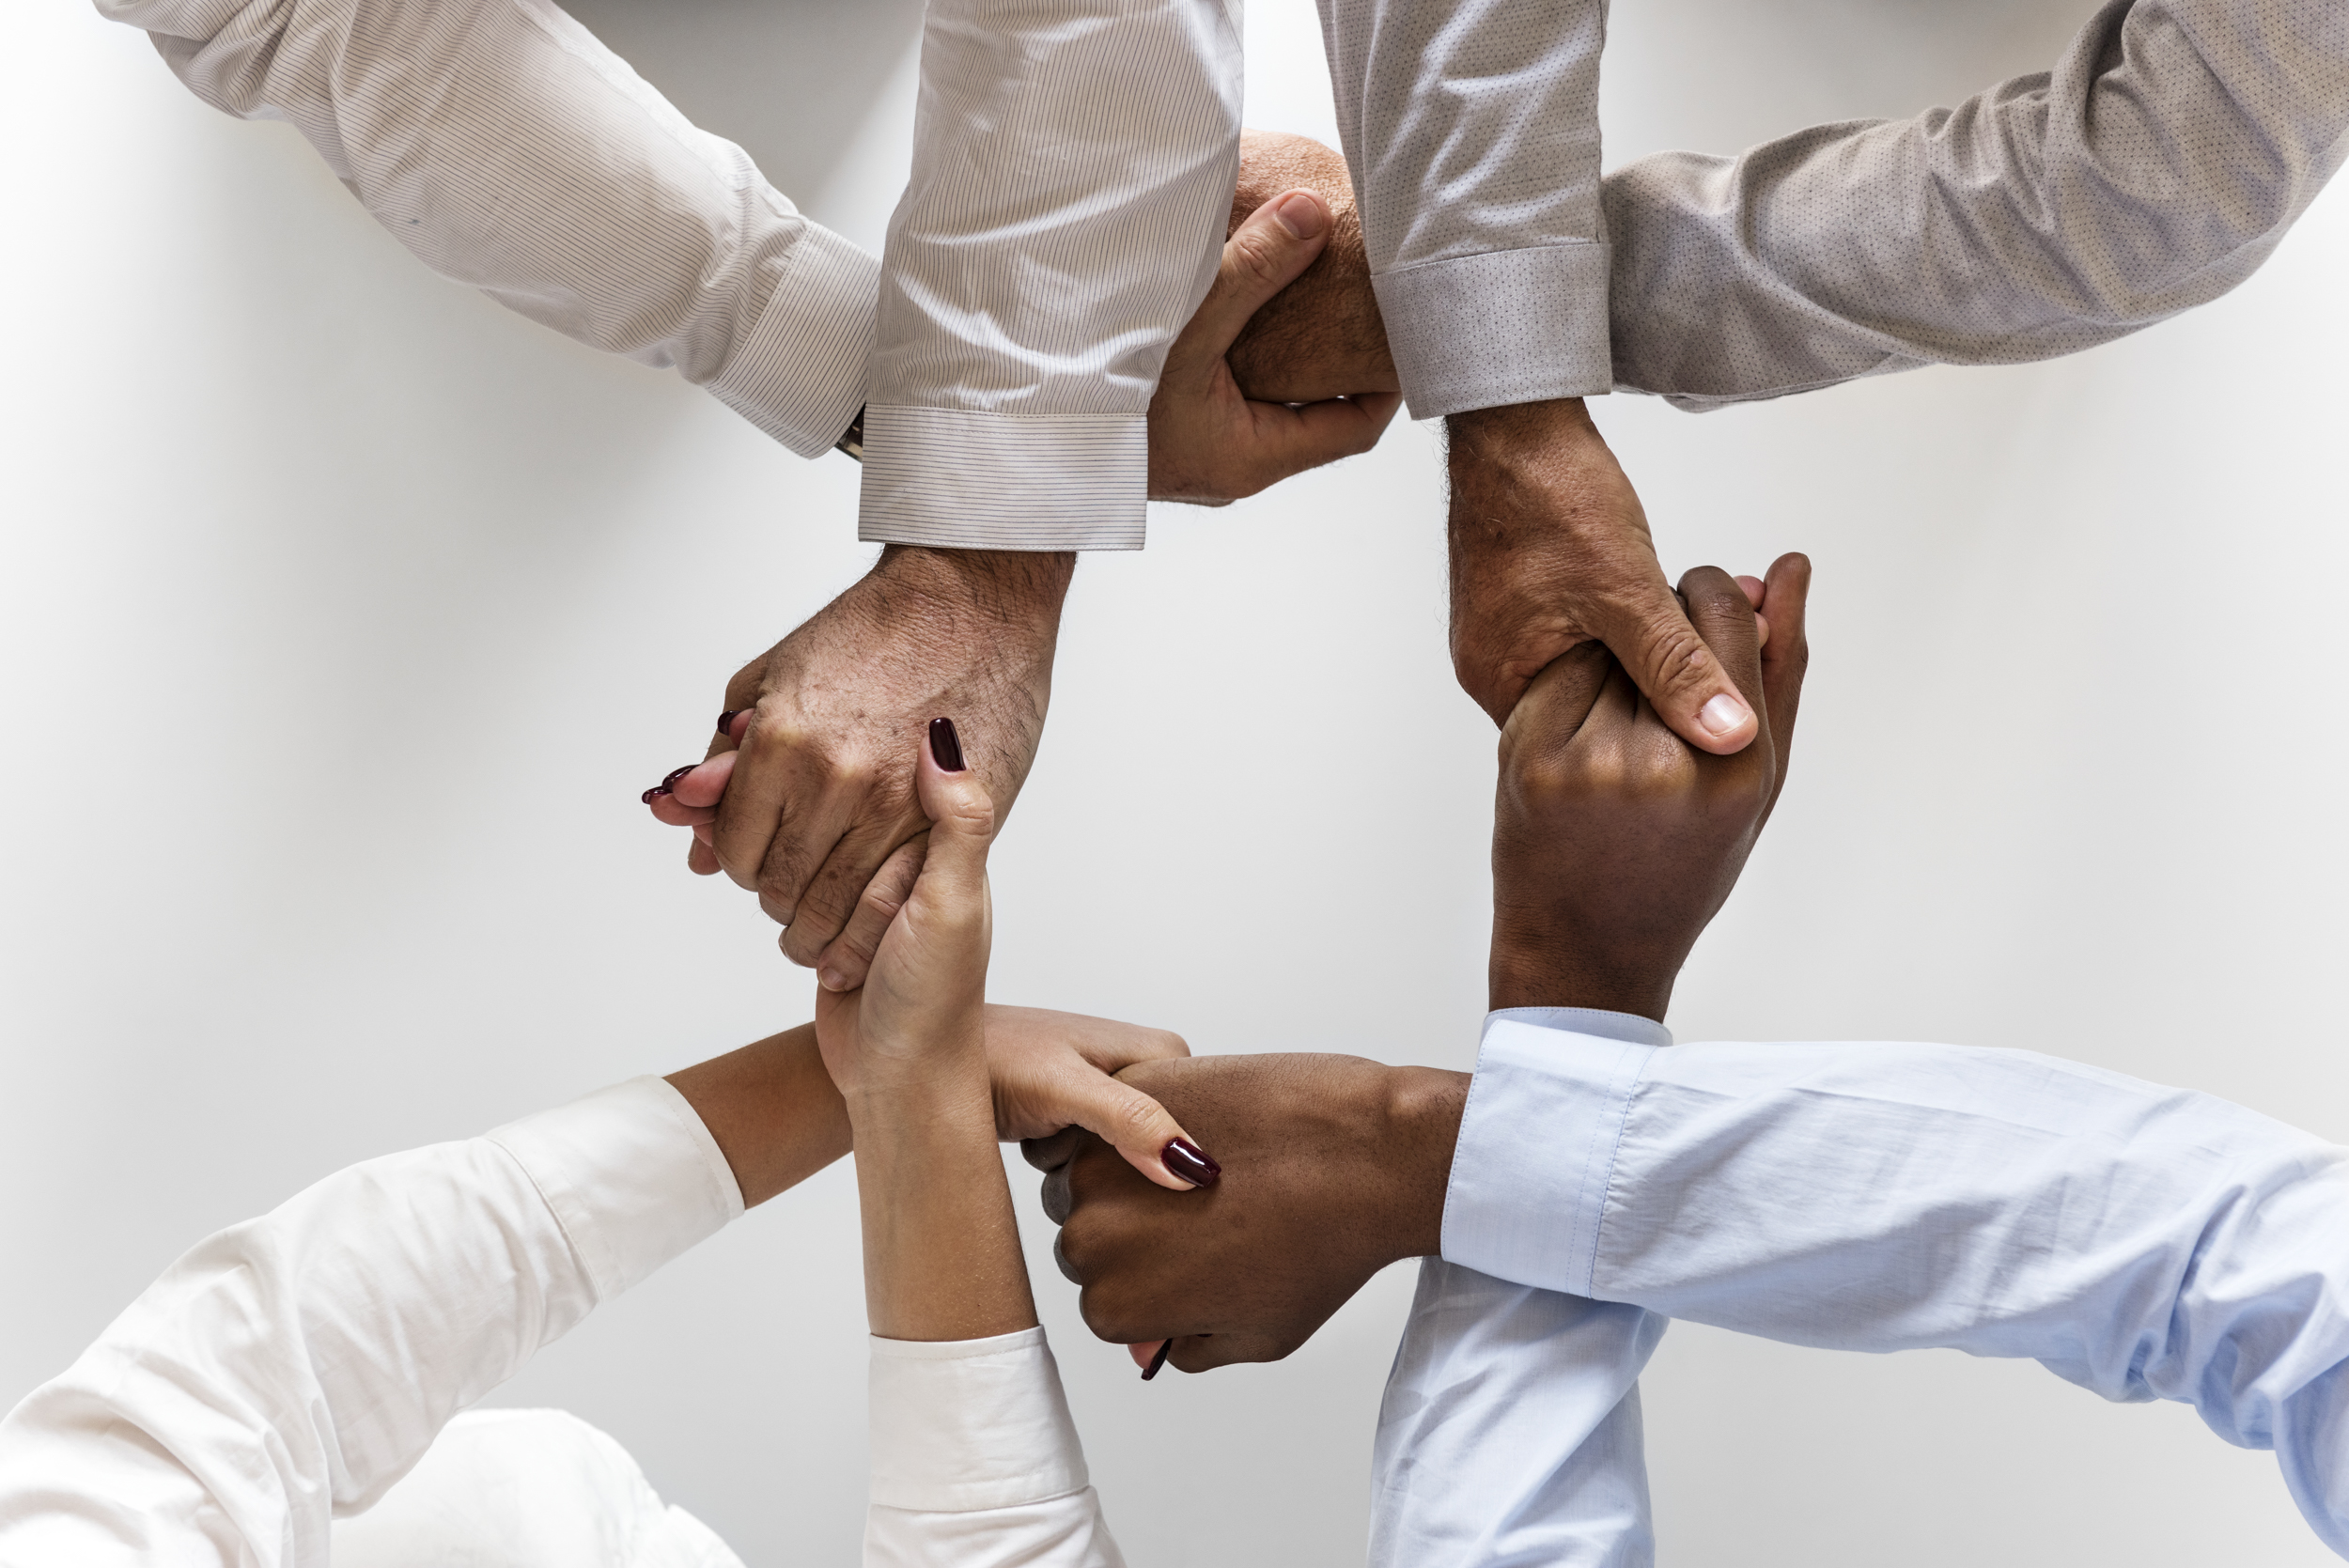 Collaboration is important for Soulpreneurs